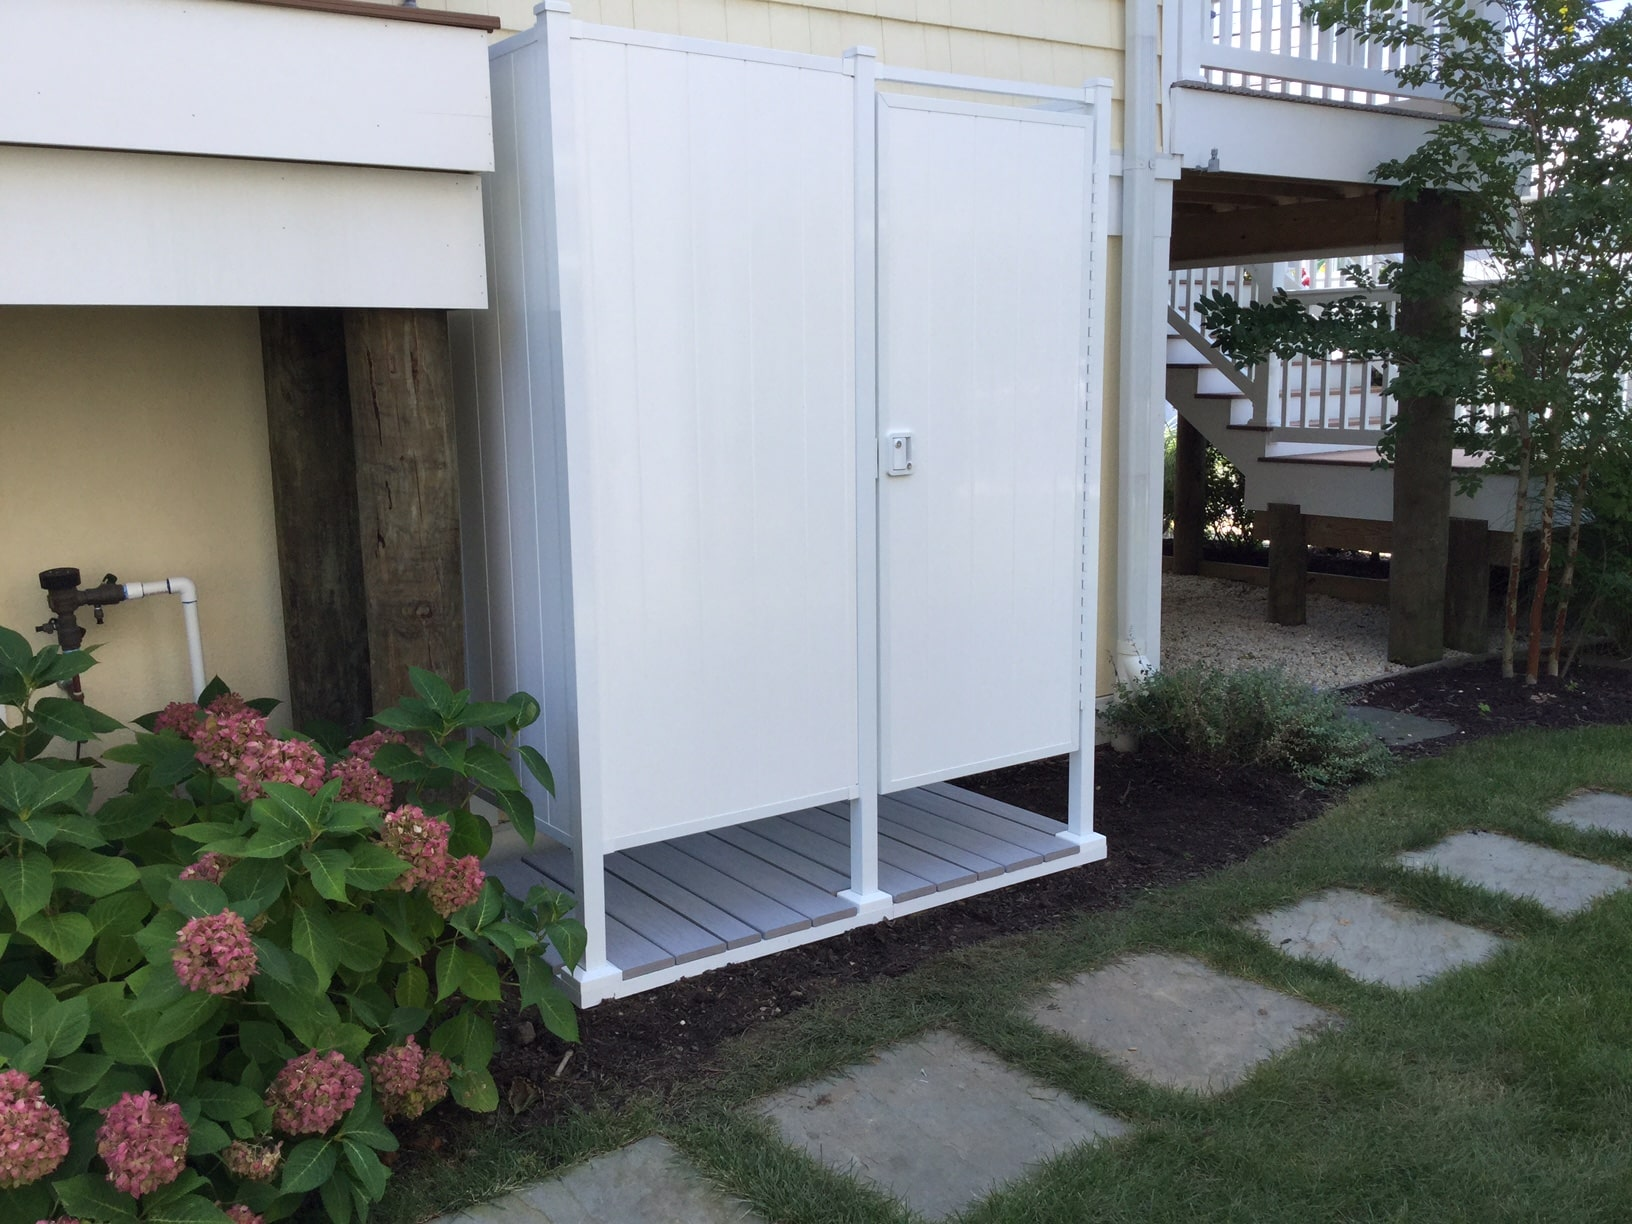 Outdoor Shower Kits: Double Shower Stall - OutdoorShowers.net ...